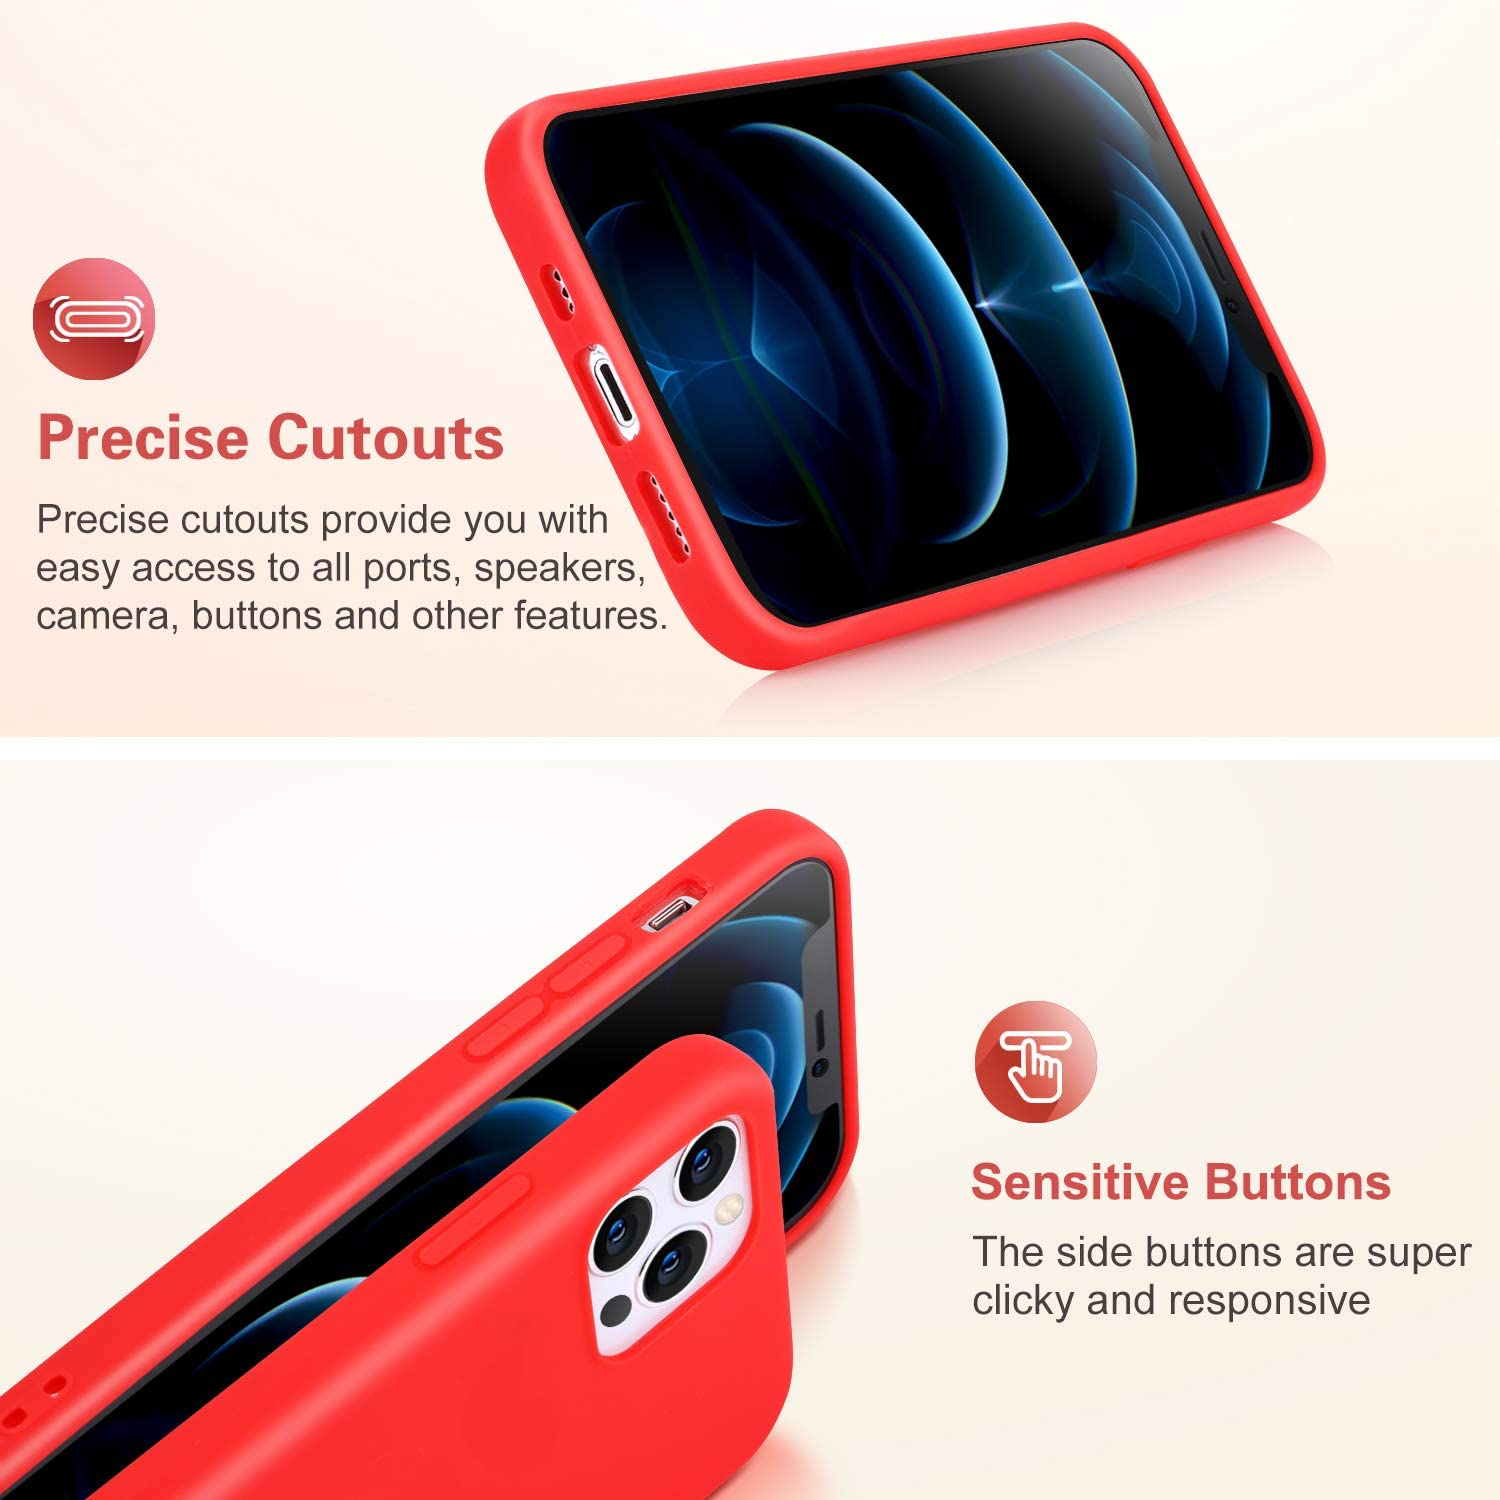 Pofesun 5 Pack Silicone Case Compatible with iPhone 12/iPhone 12 Pro, Slim Gel Rubber Full Body Protection Shockproof Case Cover for iPhone 12 / iPhone 12 Pro 6.1 inch-Black,Red,Yellow,Rose,Lake Blue